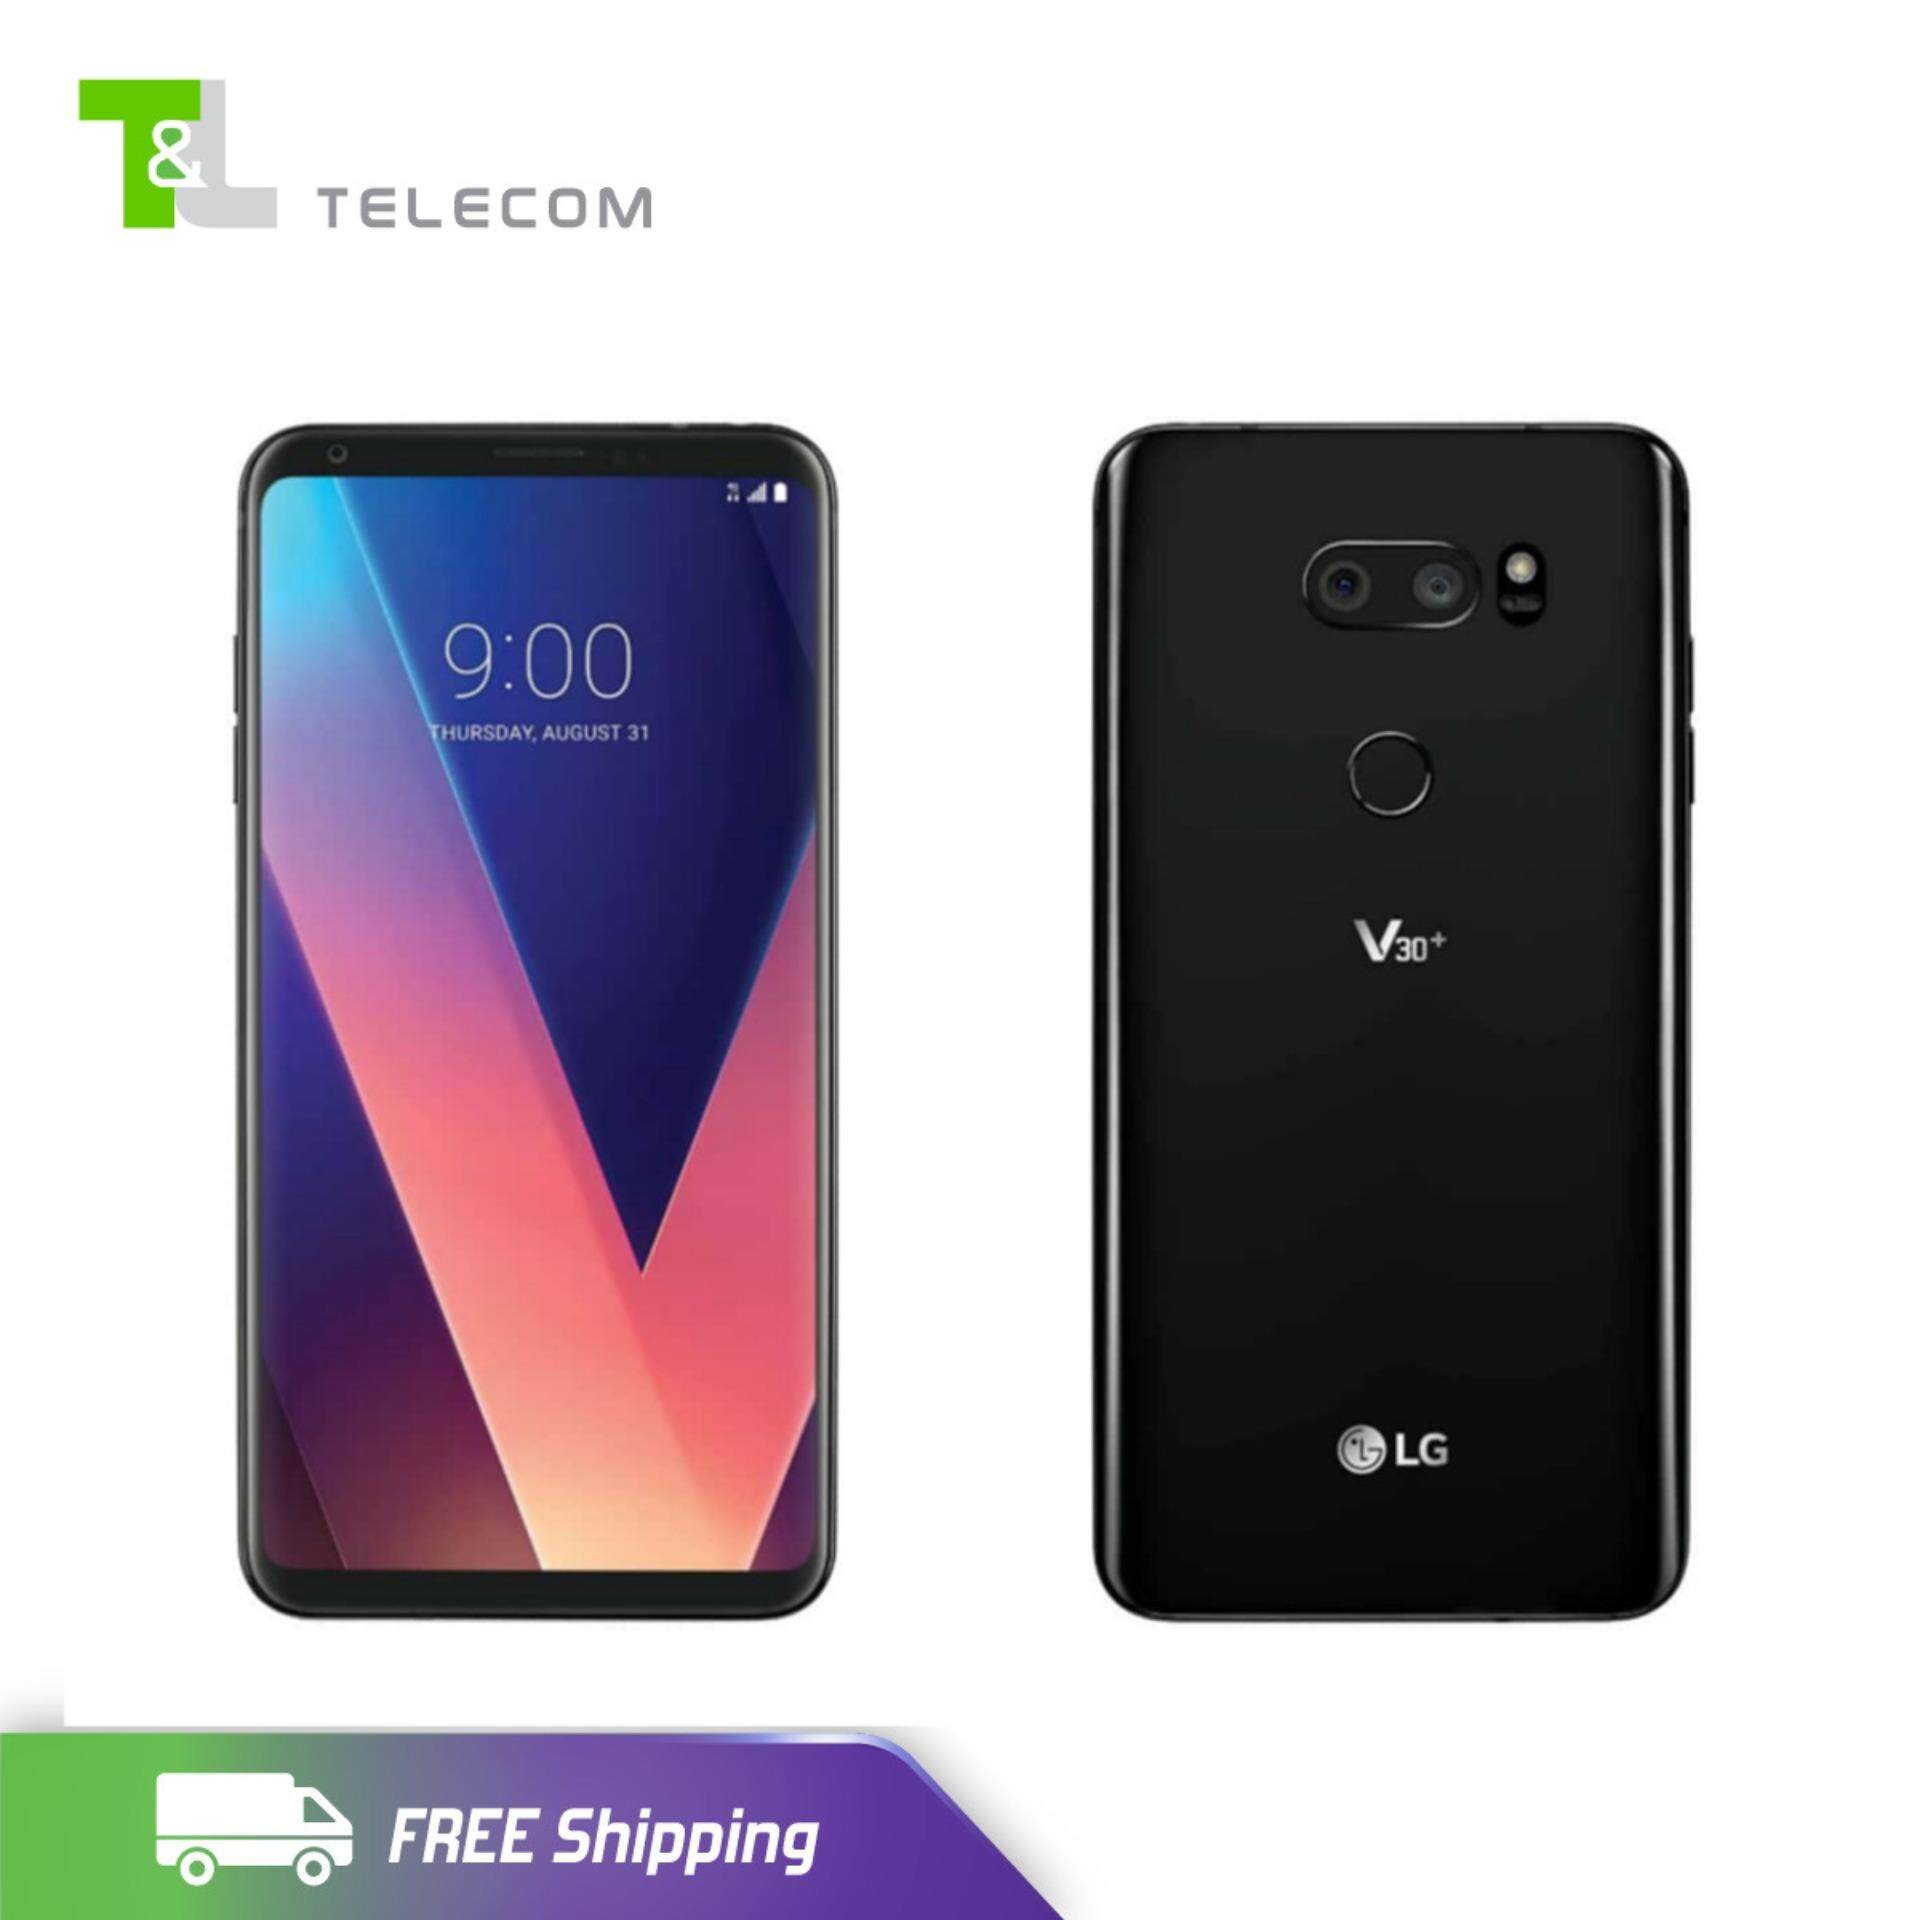 Lg Mobiles Tablets Price In Malaysia Best L20 4gb White V30 Plus 128gb Ram Dual Sim Lte Aurora Black